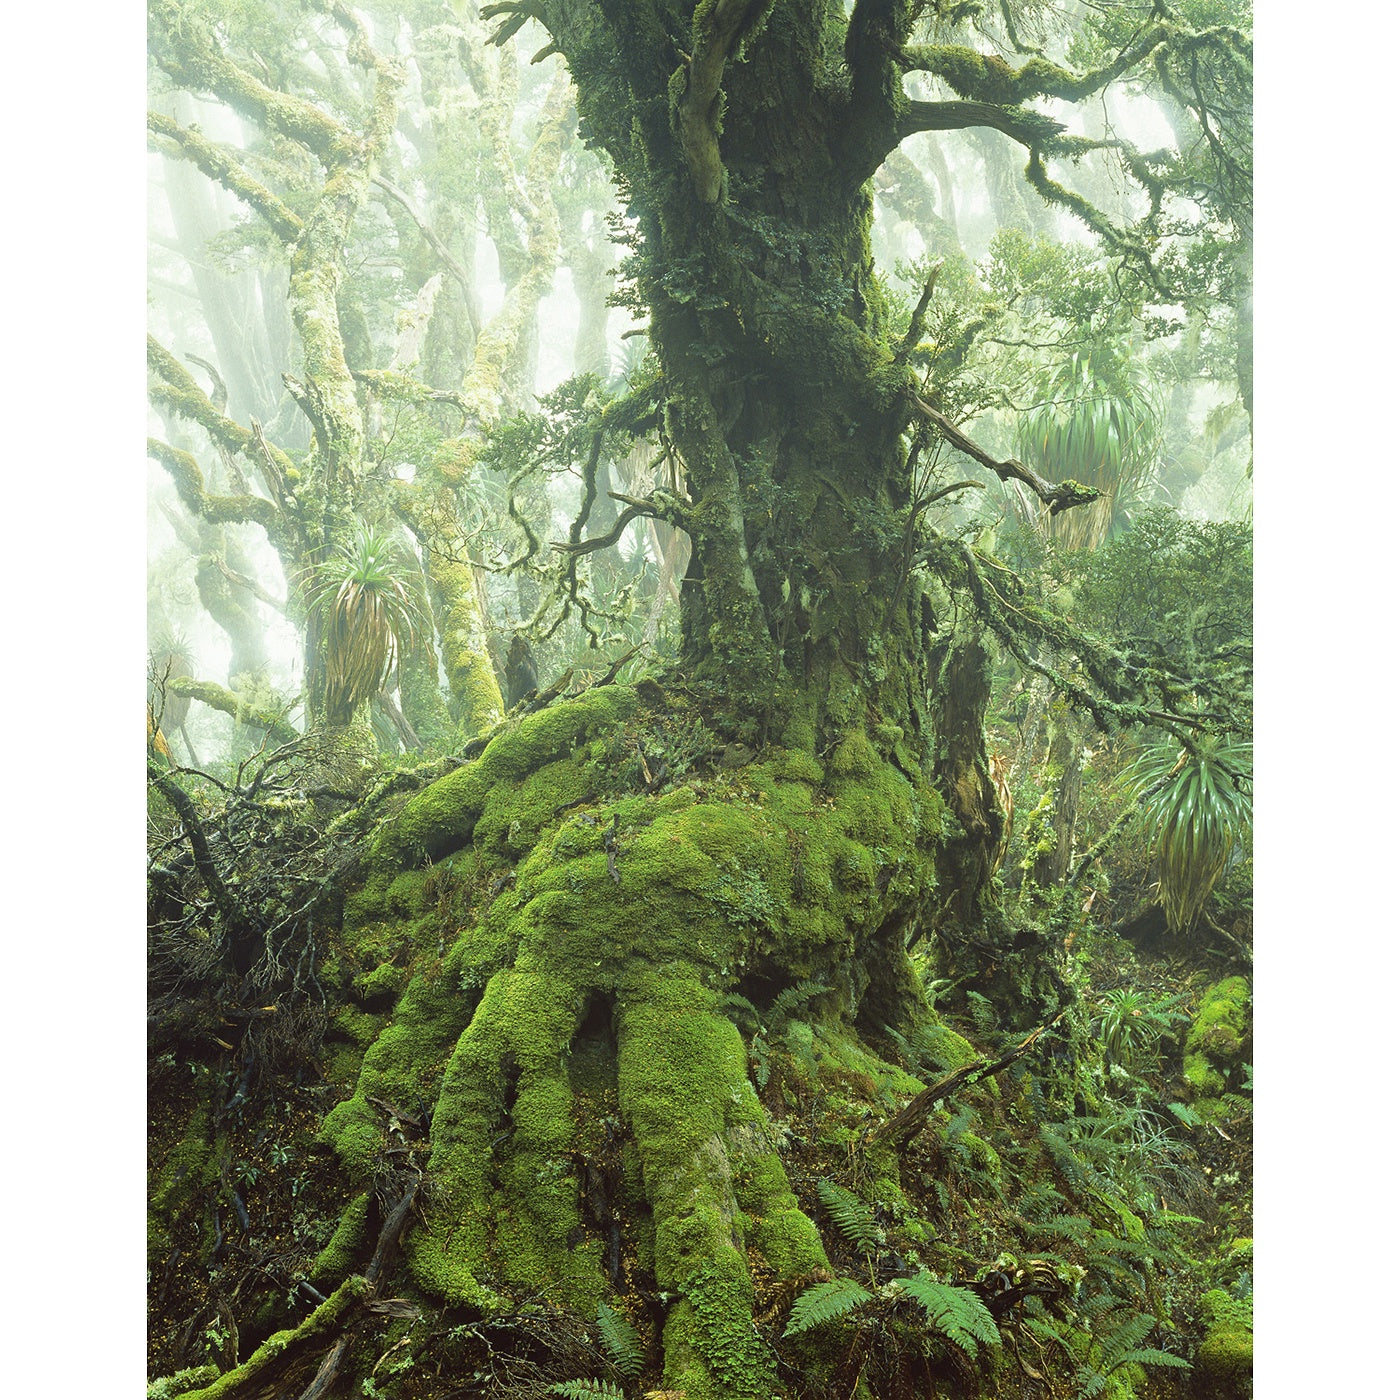 Peter Dombrovskis - Myrtle Tree